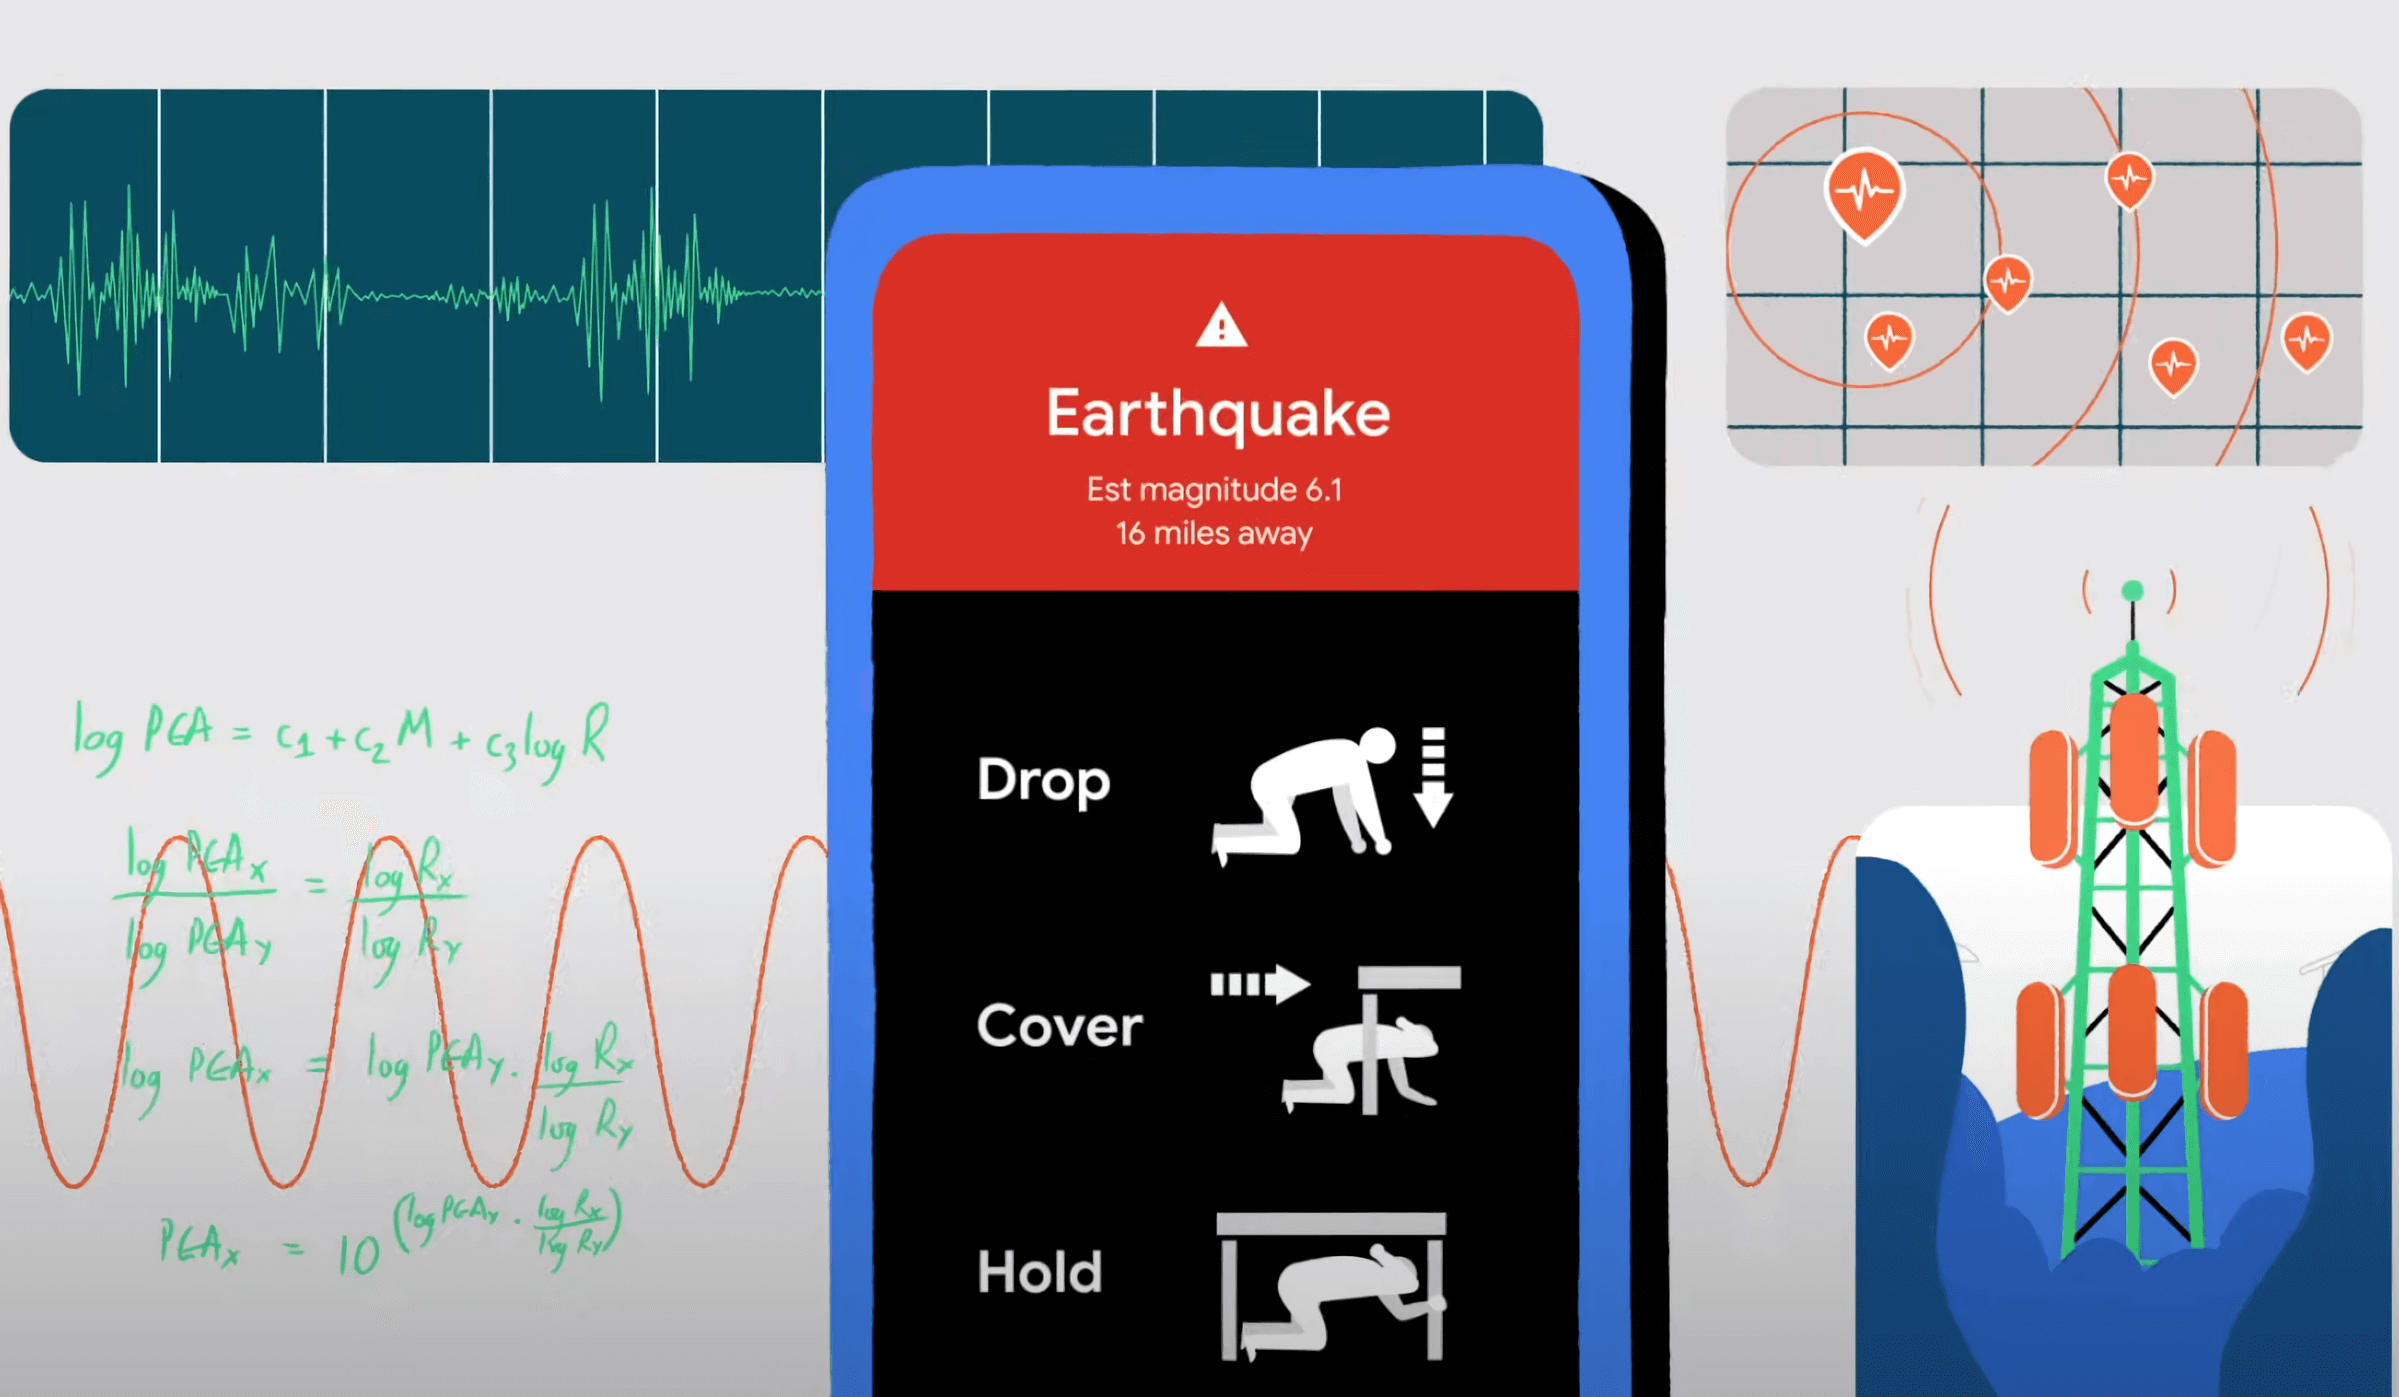 Google will use Android smartphones as earthquake detection devices